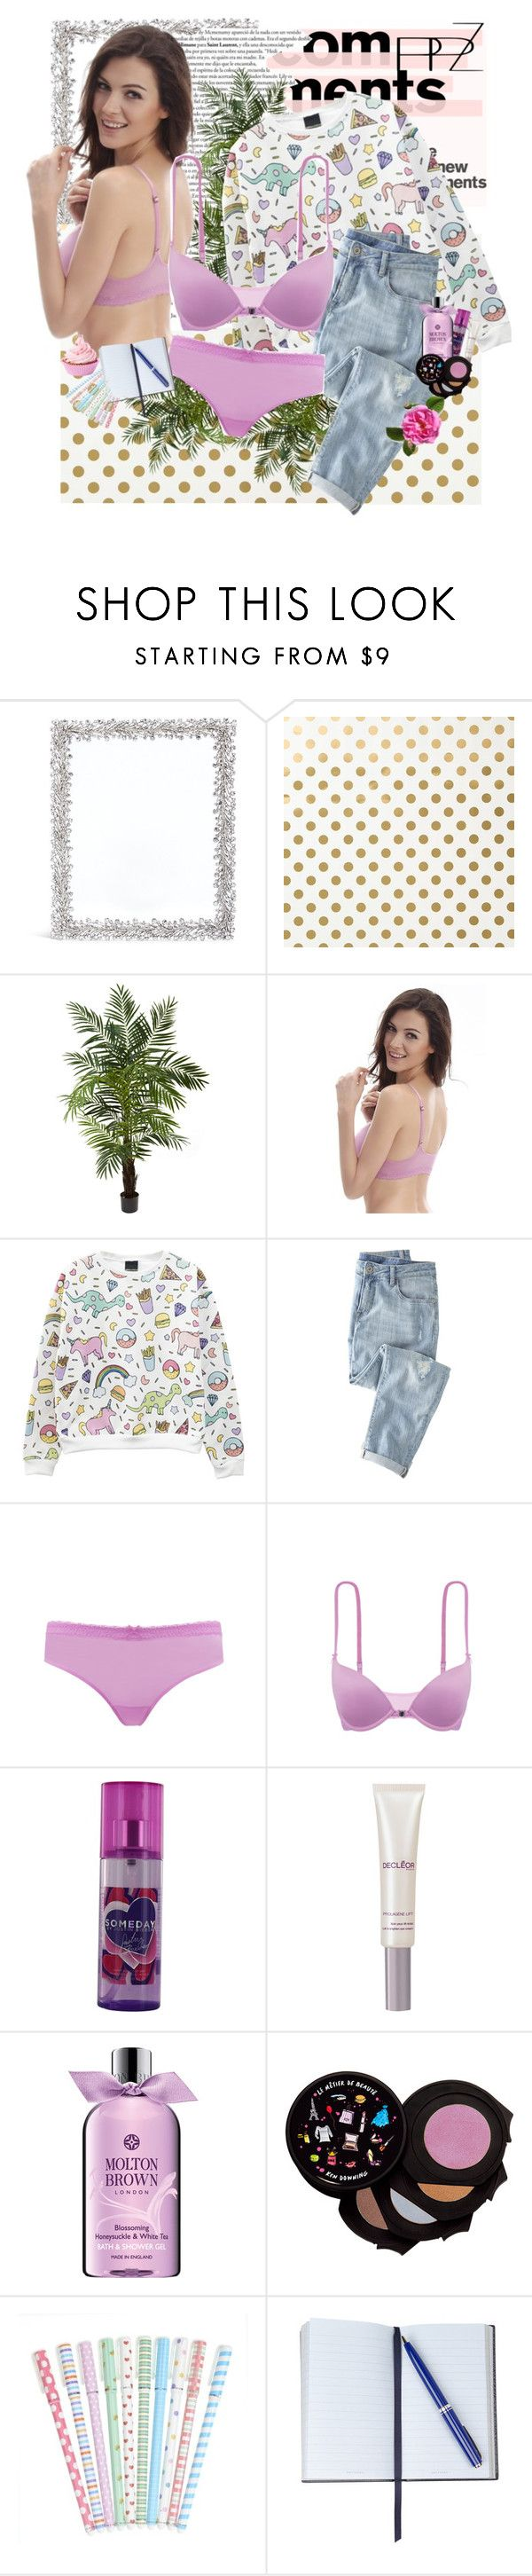 """PPZ Lingerie 9."" by nensy ❤ liked on Polyvore featuring Lane Crawford, Kate Spade, Nearly Natural, Wrap, Justin Bieber, Decléor, Molton Brown, Le Métier de Beauté, Smythson and lingerie"